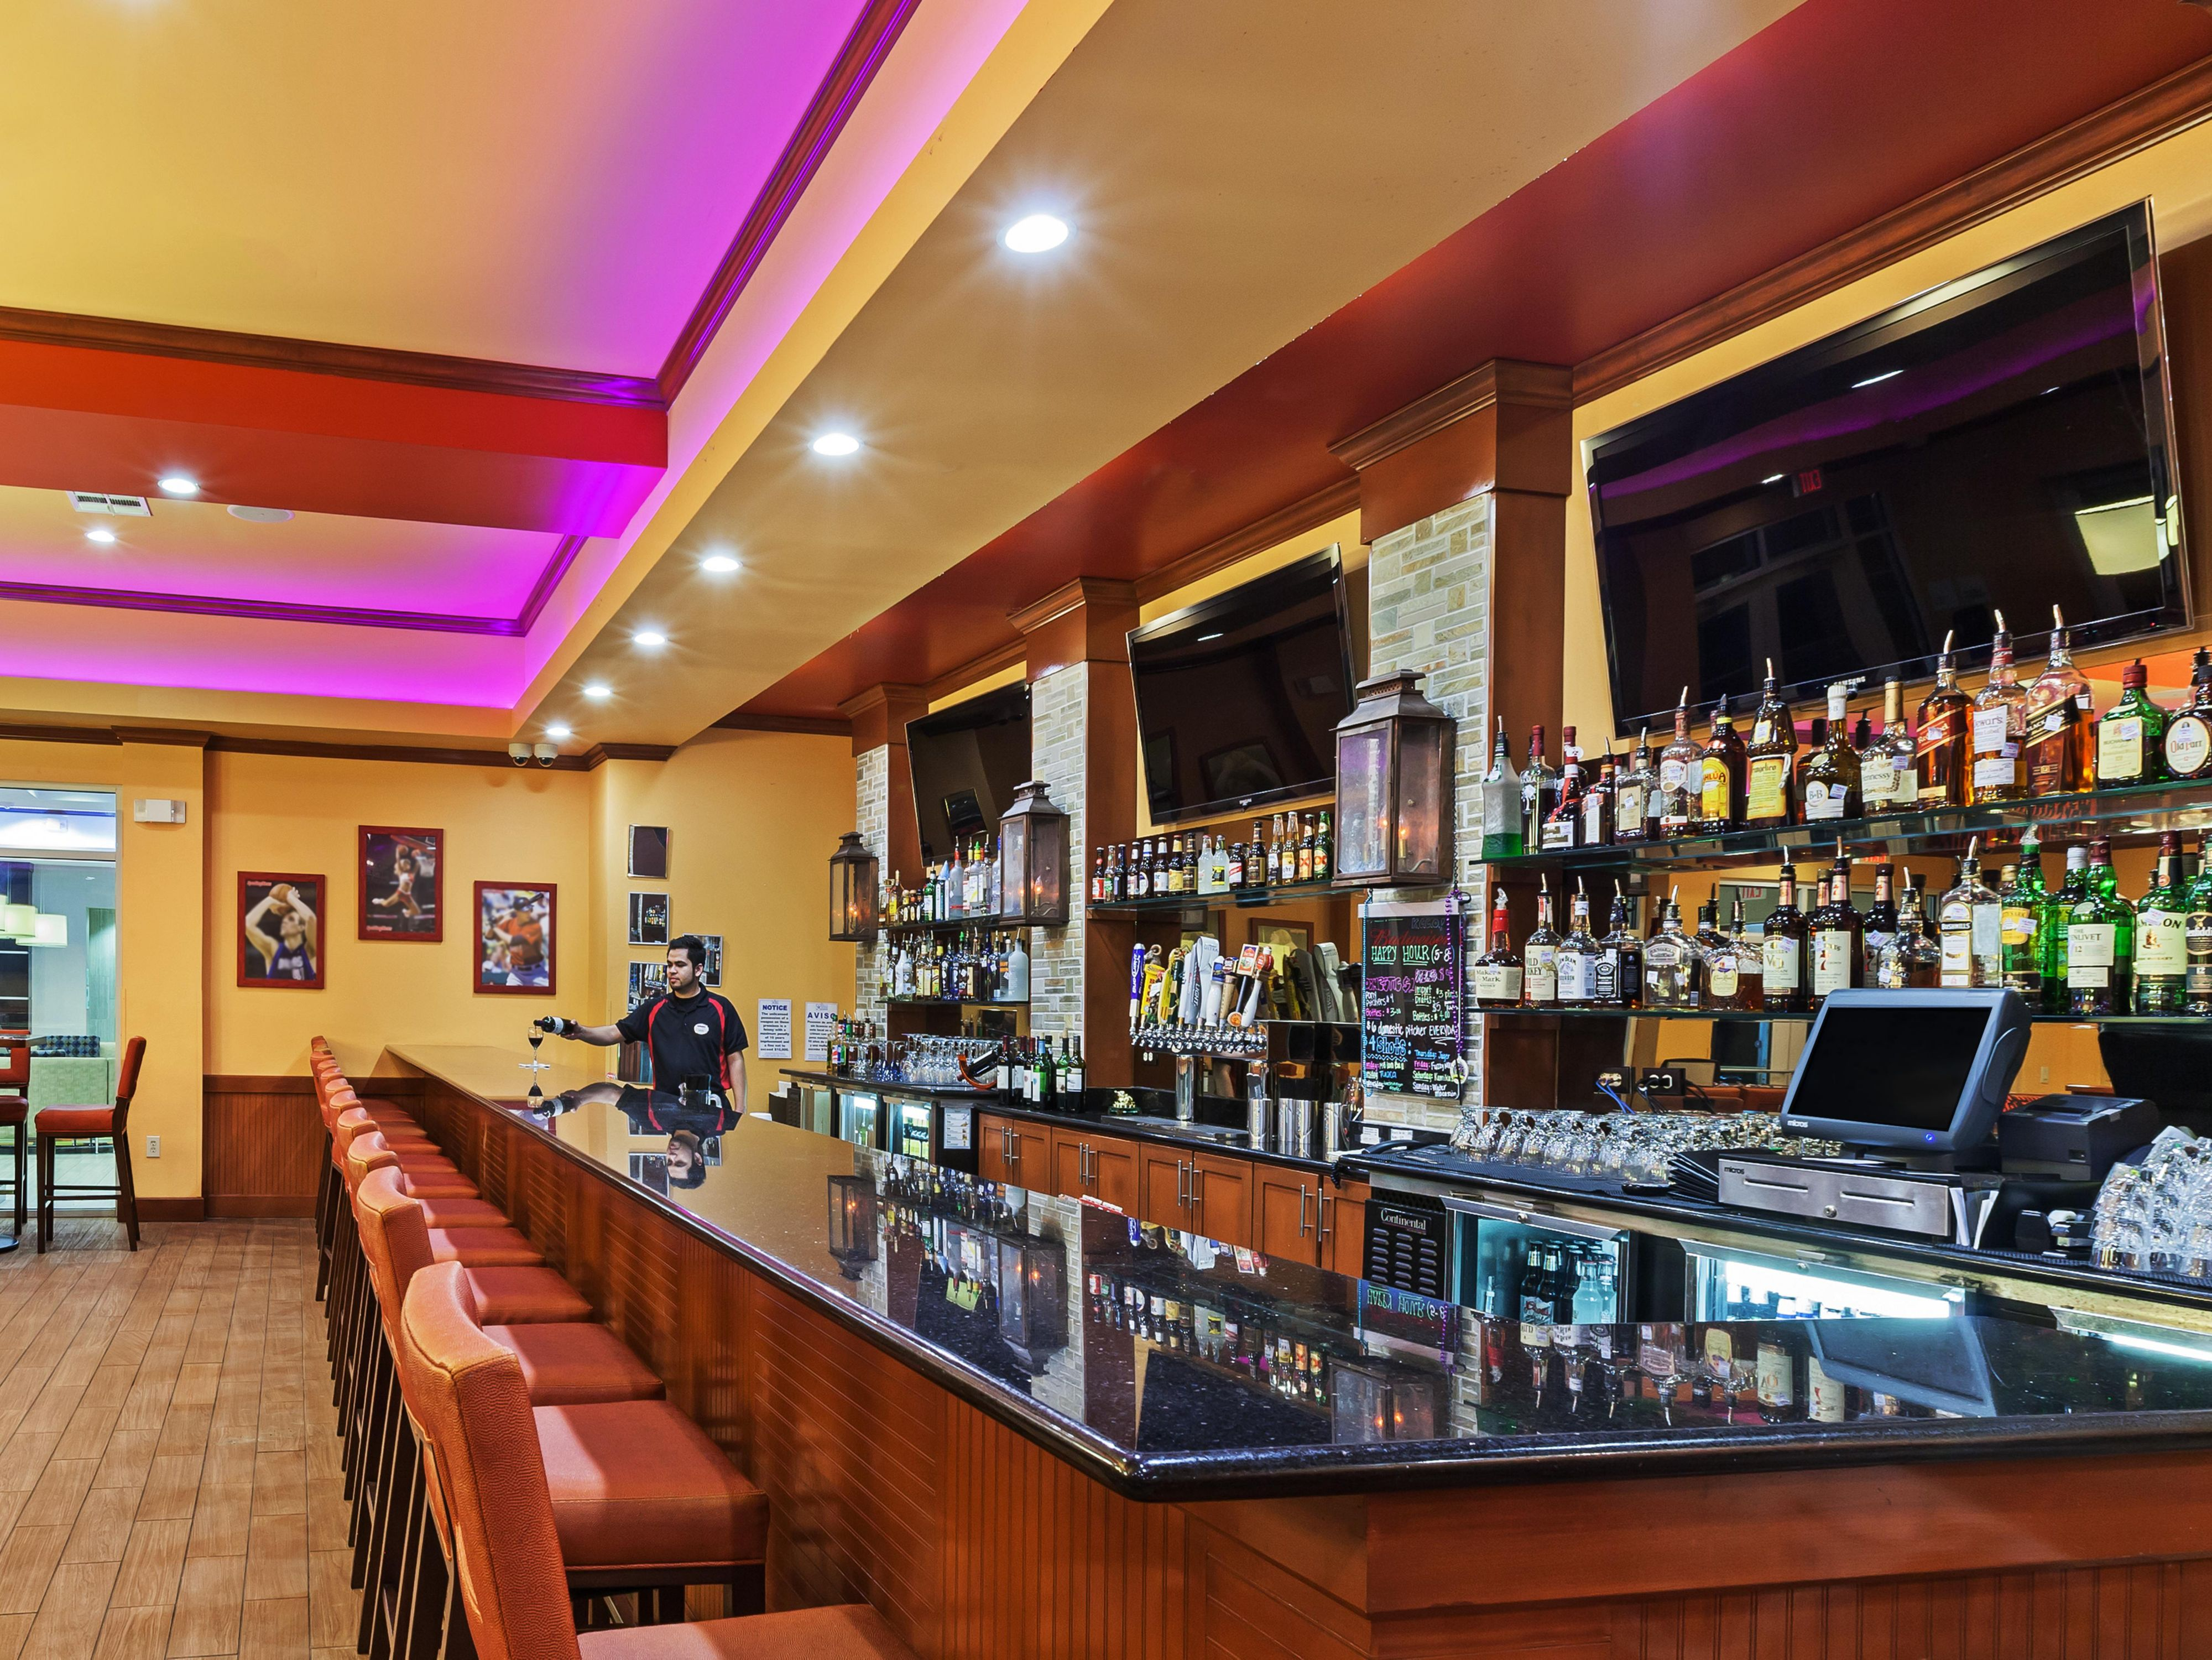 Grab a drink at our Bar and Lounge